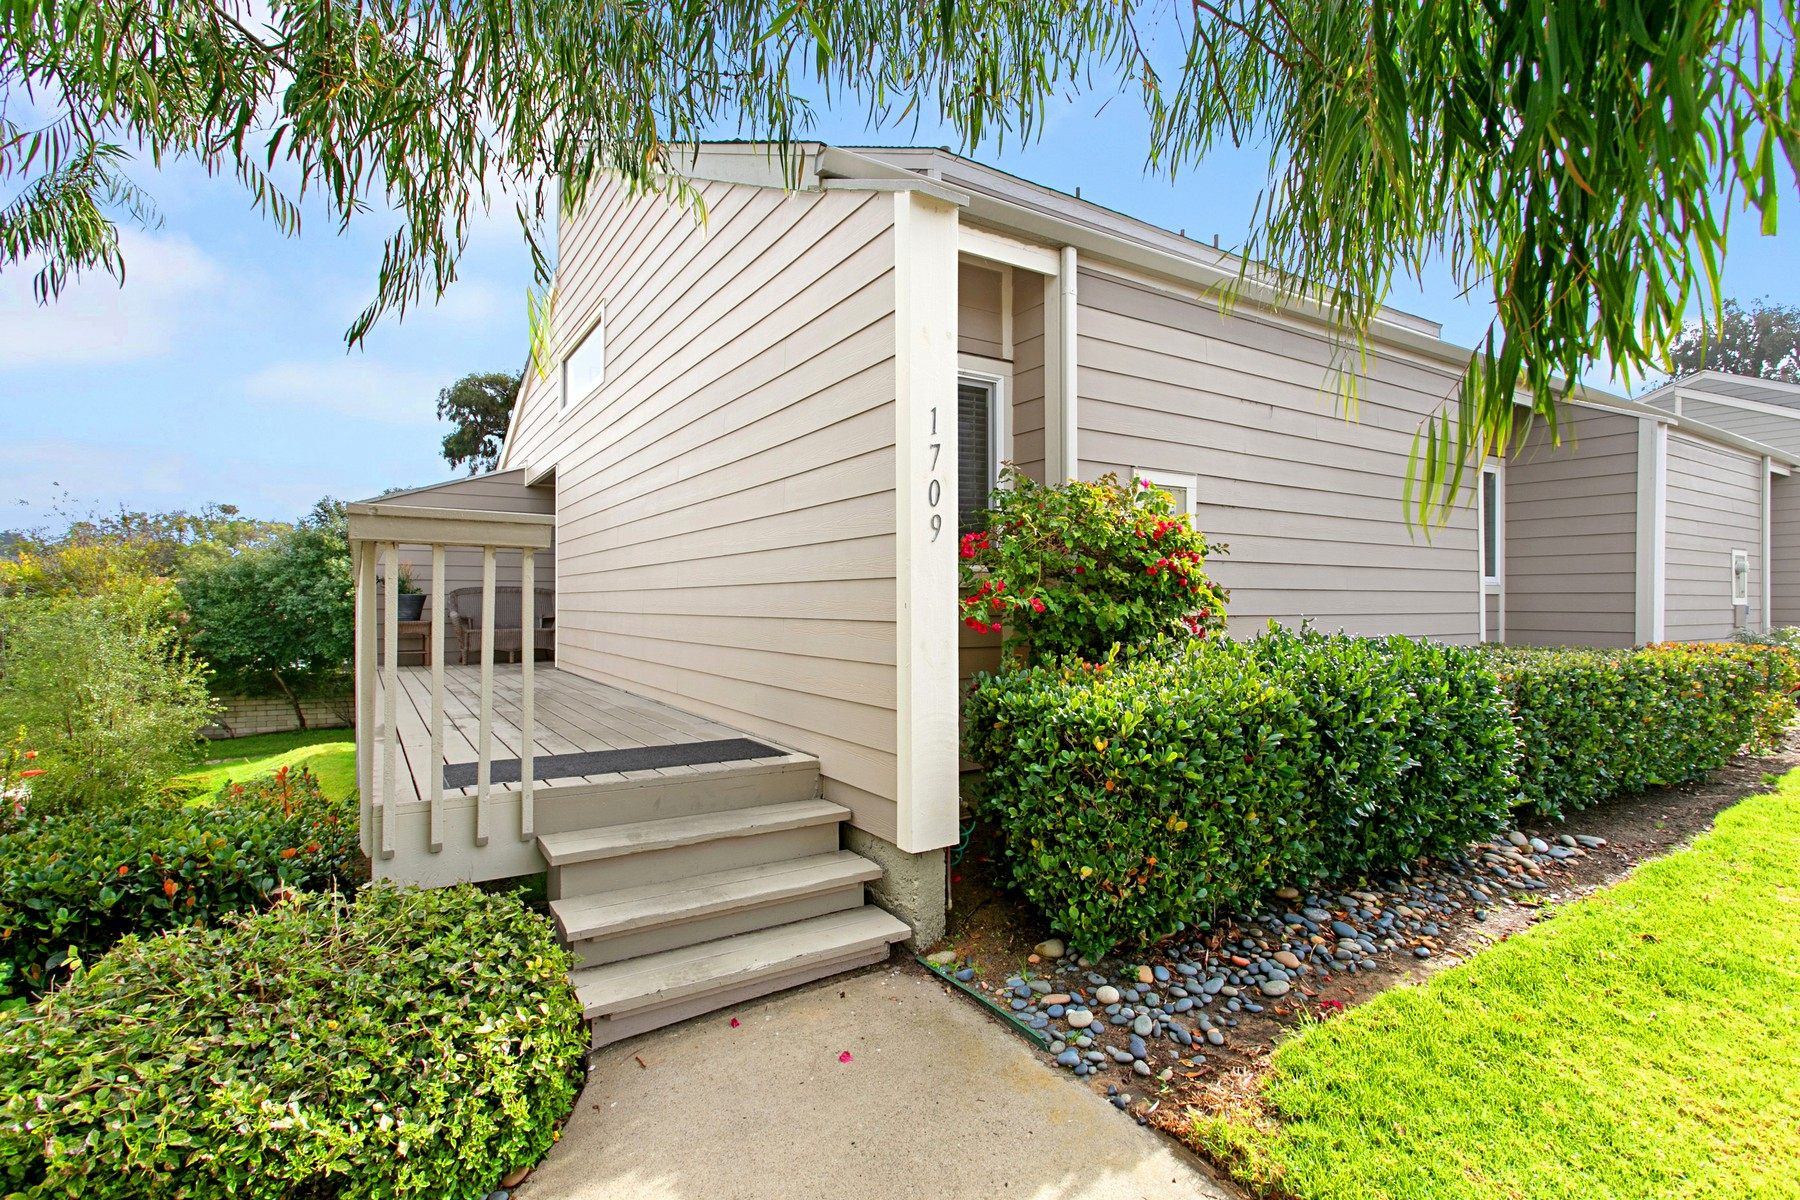 Property for Sale at Lovely Townhome in Seabluffe 1709 Kennington Encinitas, California 92024 United States